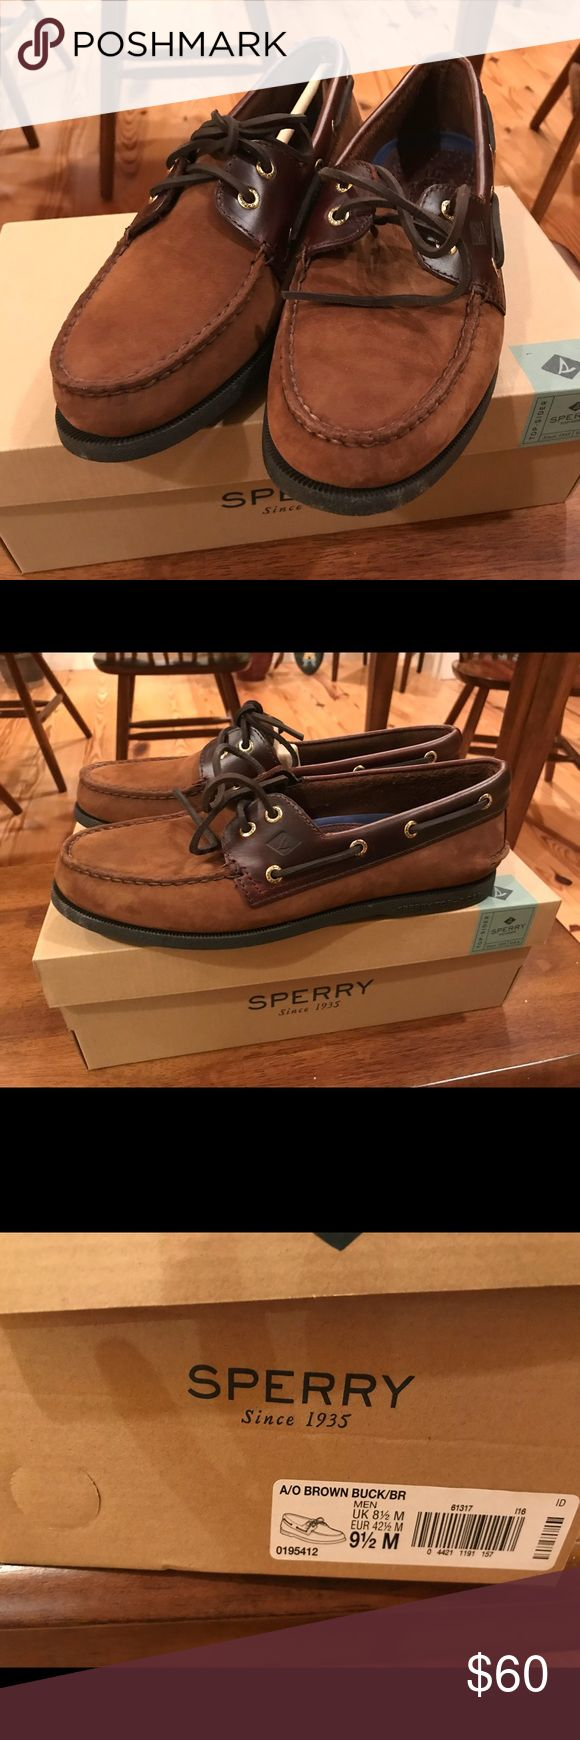 NWT Men's Sherry Suede Brown Loafers. Sz 9 1/2 NWT Men's Sherry Suede Brown Loafers. Sz 9 1/2 Sperry Shoes Loafers & Slip-Ons